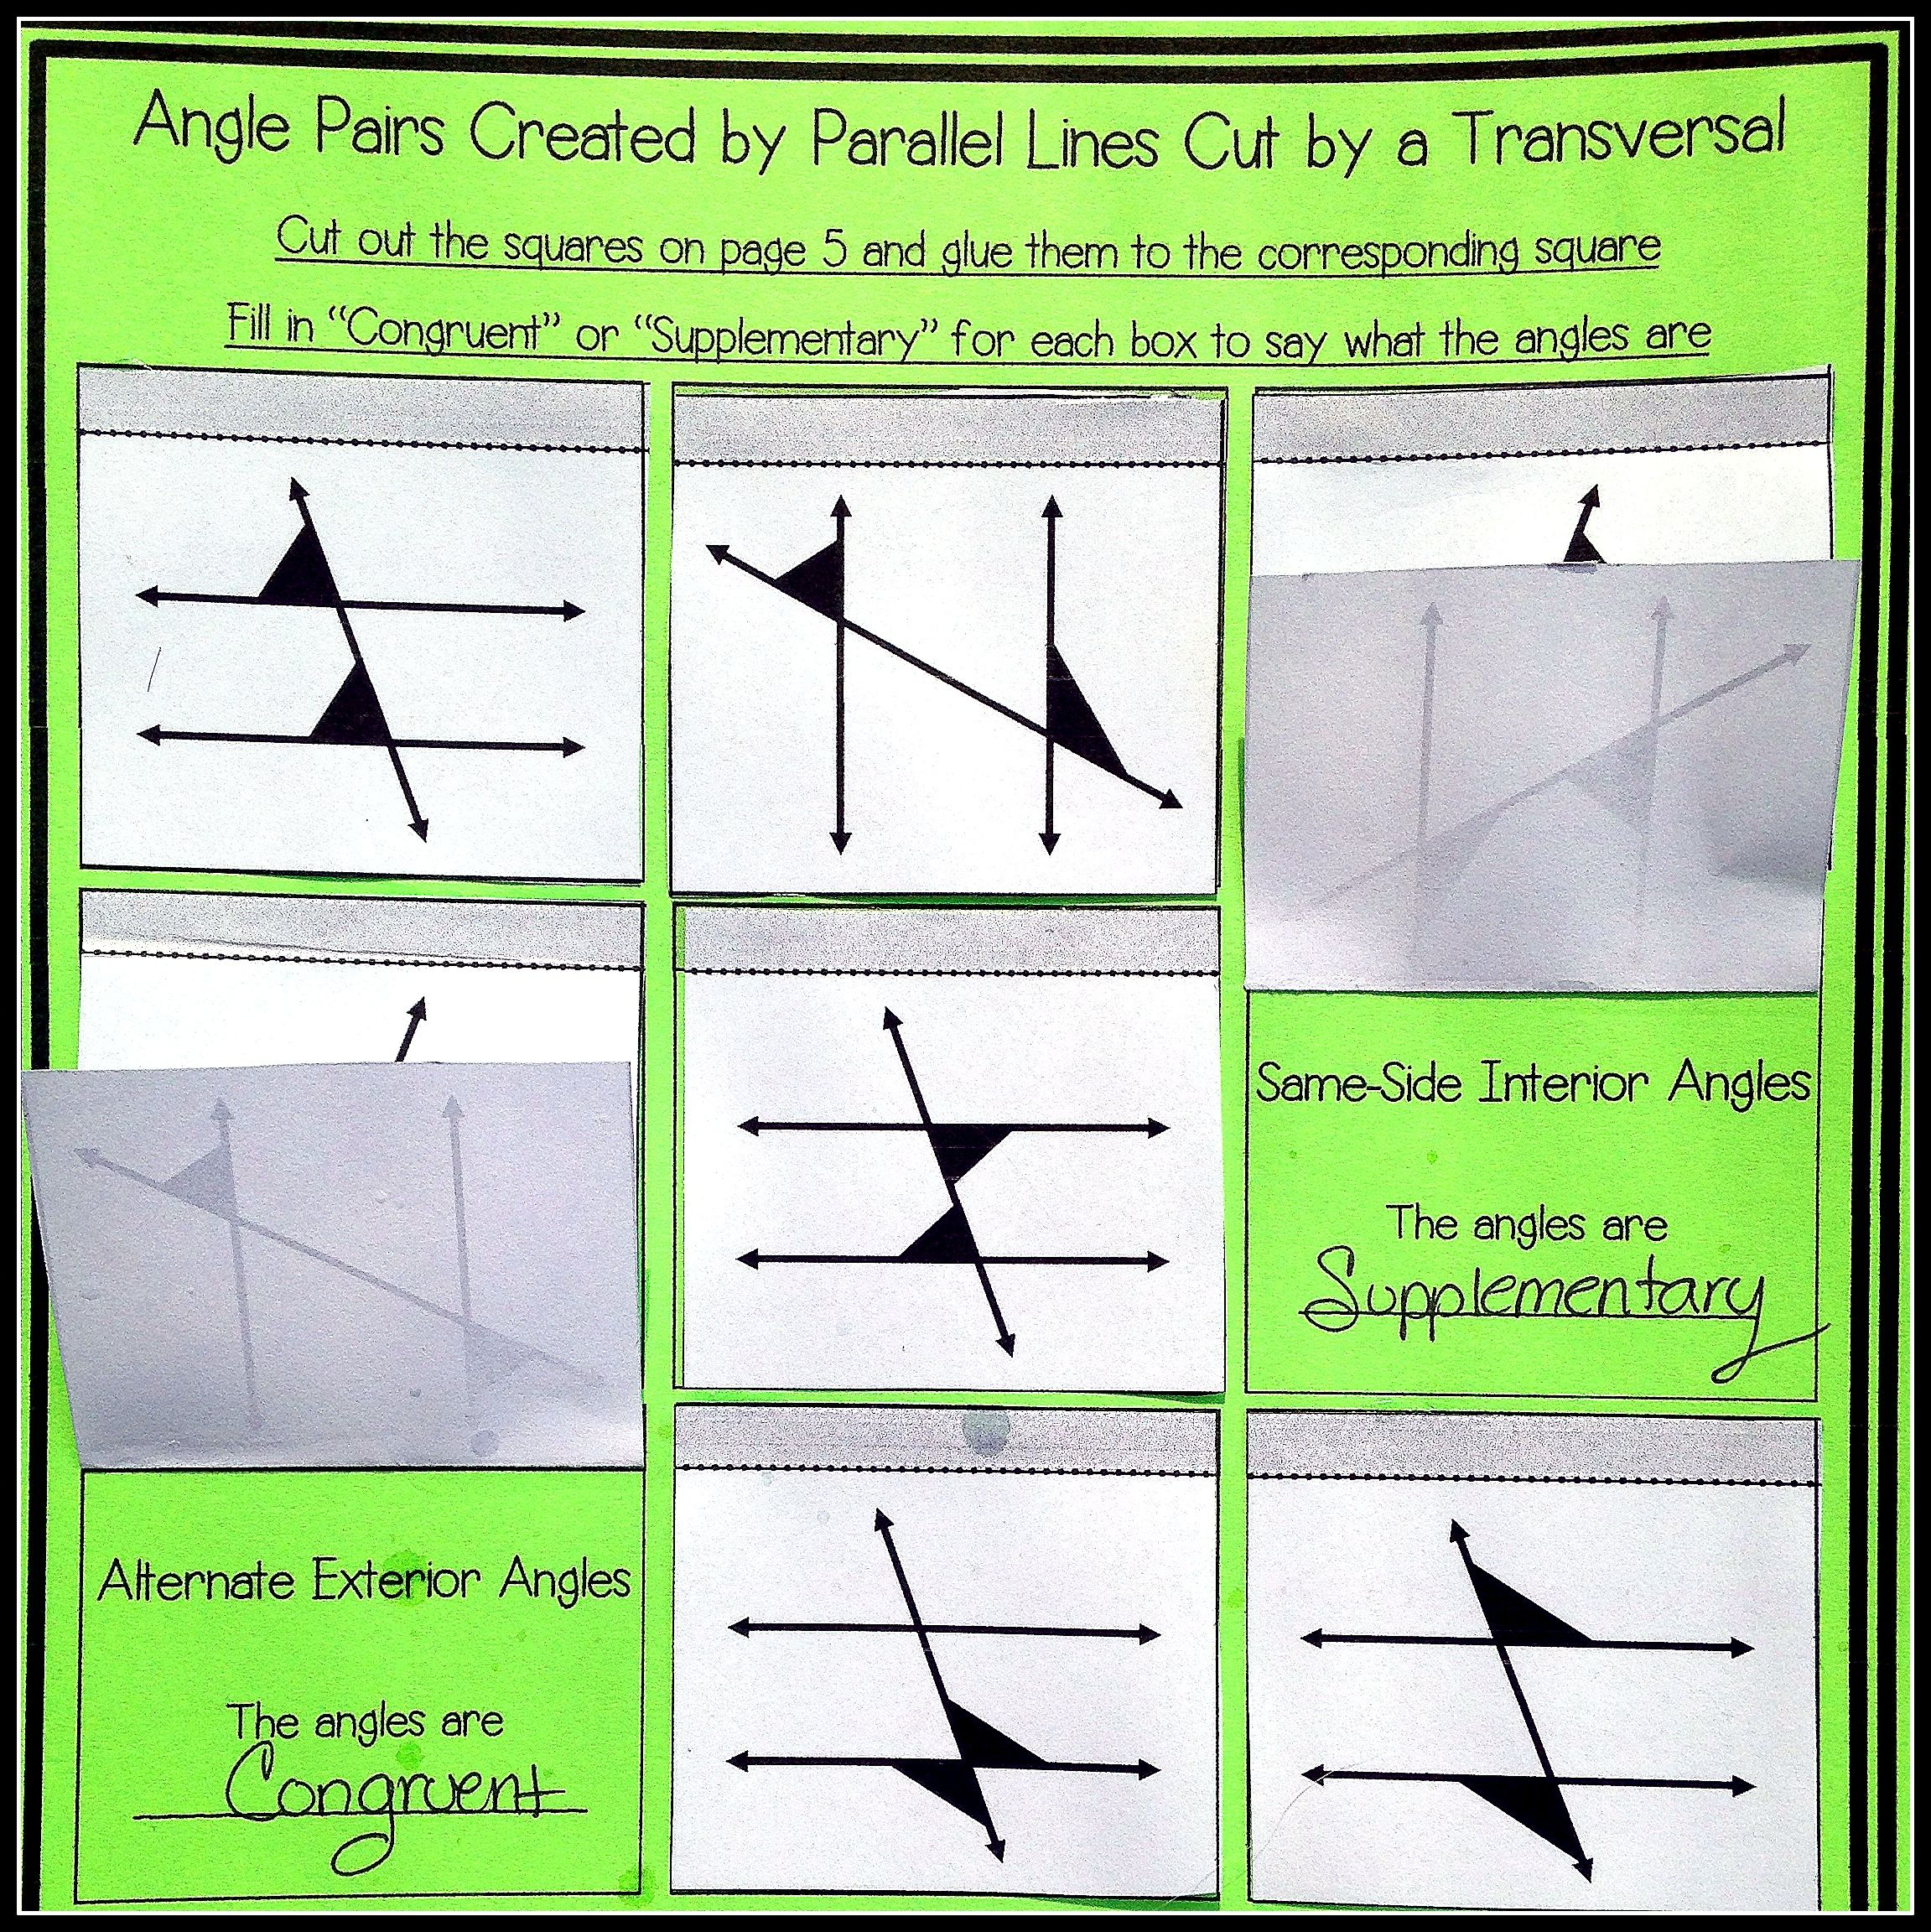 Mathworksheets4kids Angles In Transversal Answer Key